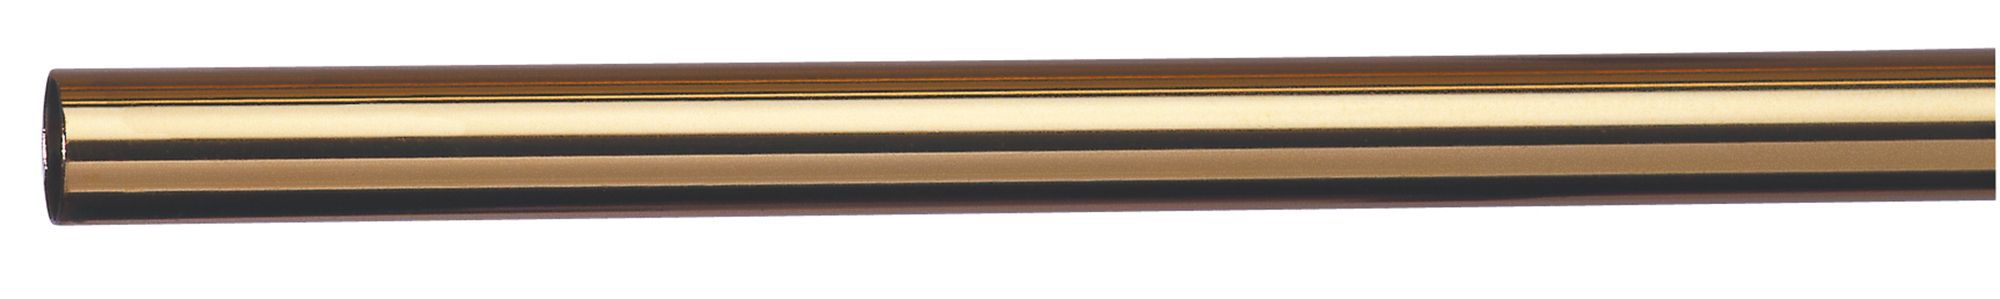 Colorail Brass Effect Steel Round Tube (l)1.83m